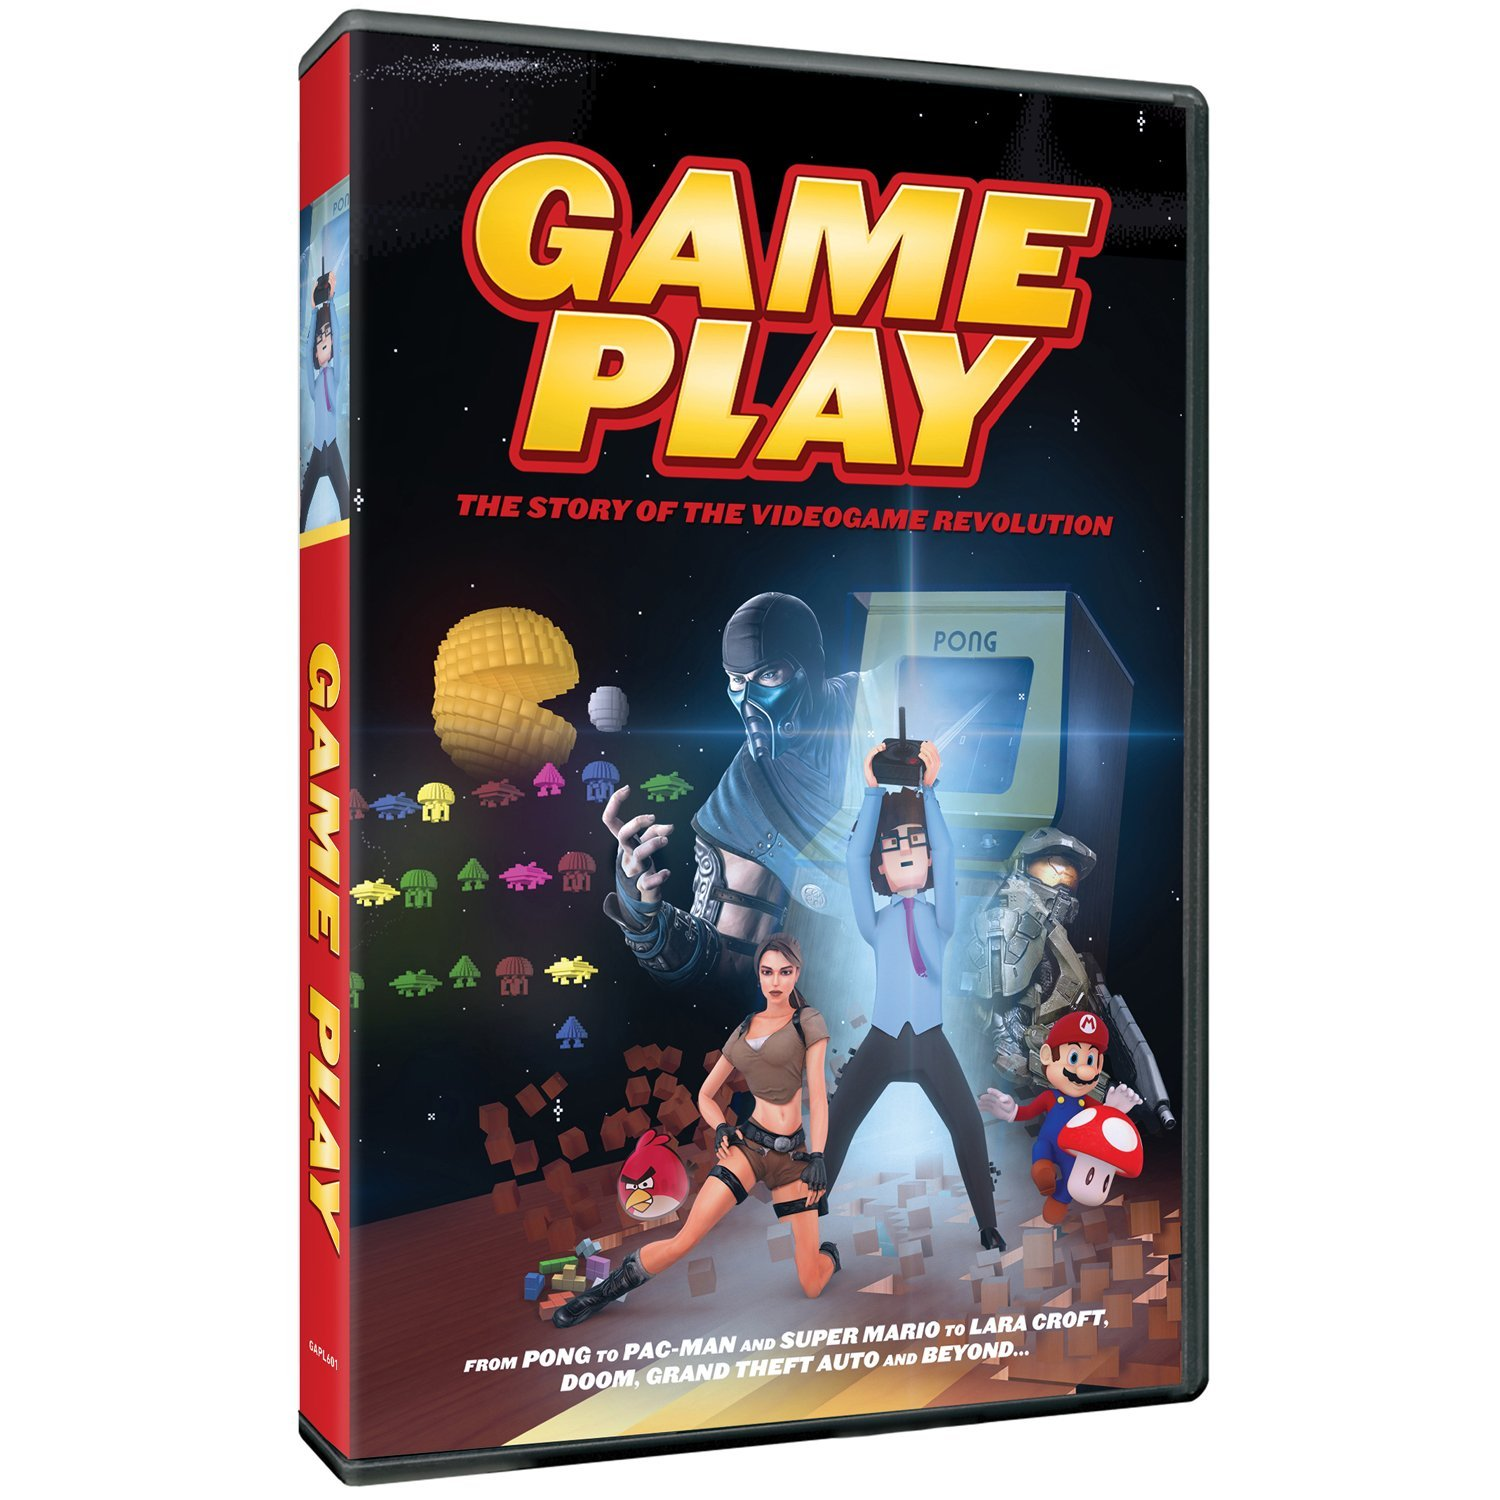 Gameplay: The Story of the Videogame Revolution, available for DVD pre-order from PBS